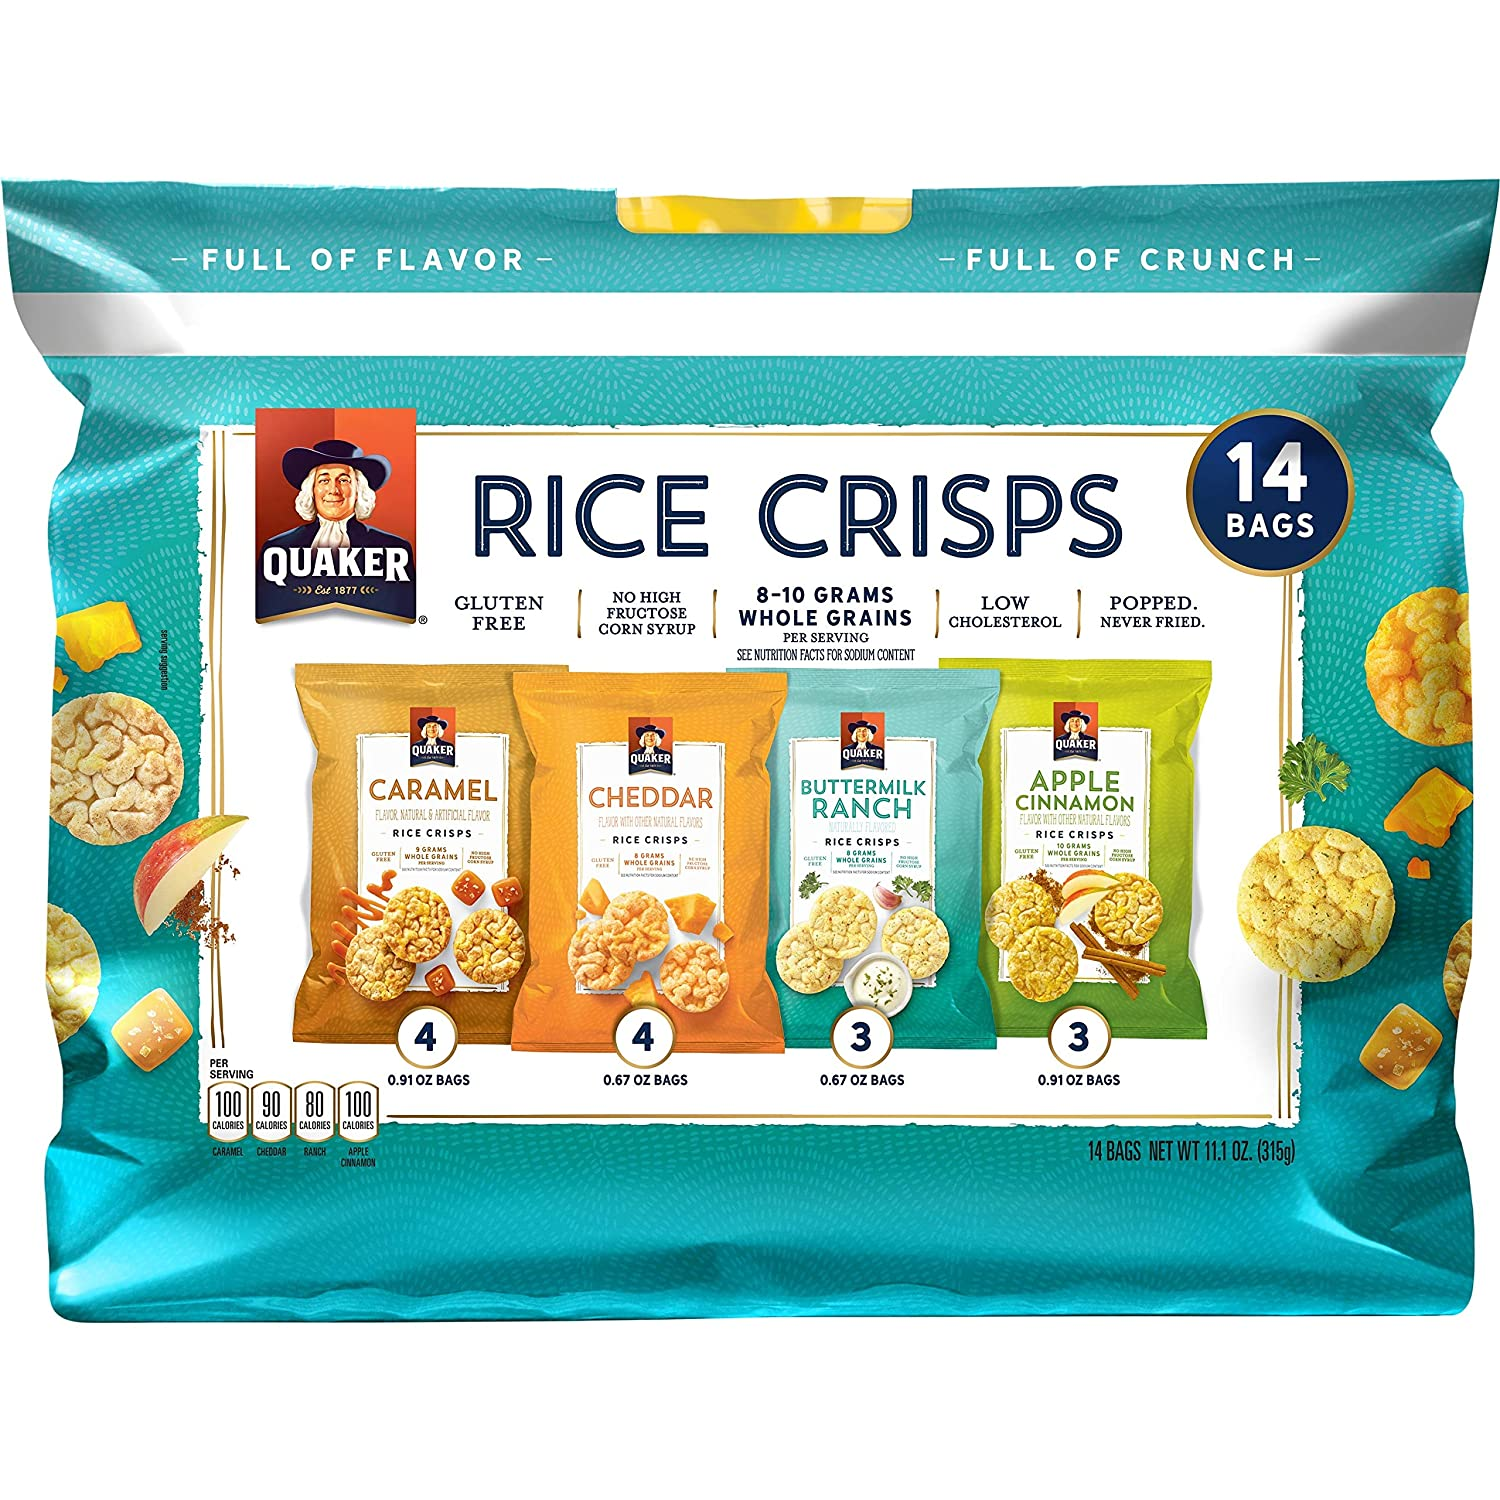 Quaker Rice Crisps Sweet & Savory, 5 pack of 14 count (total 70 count)